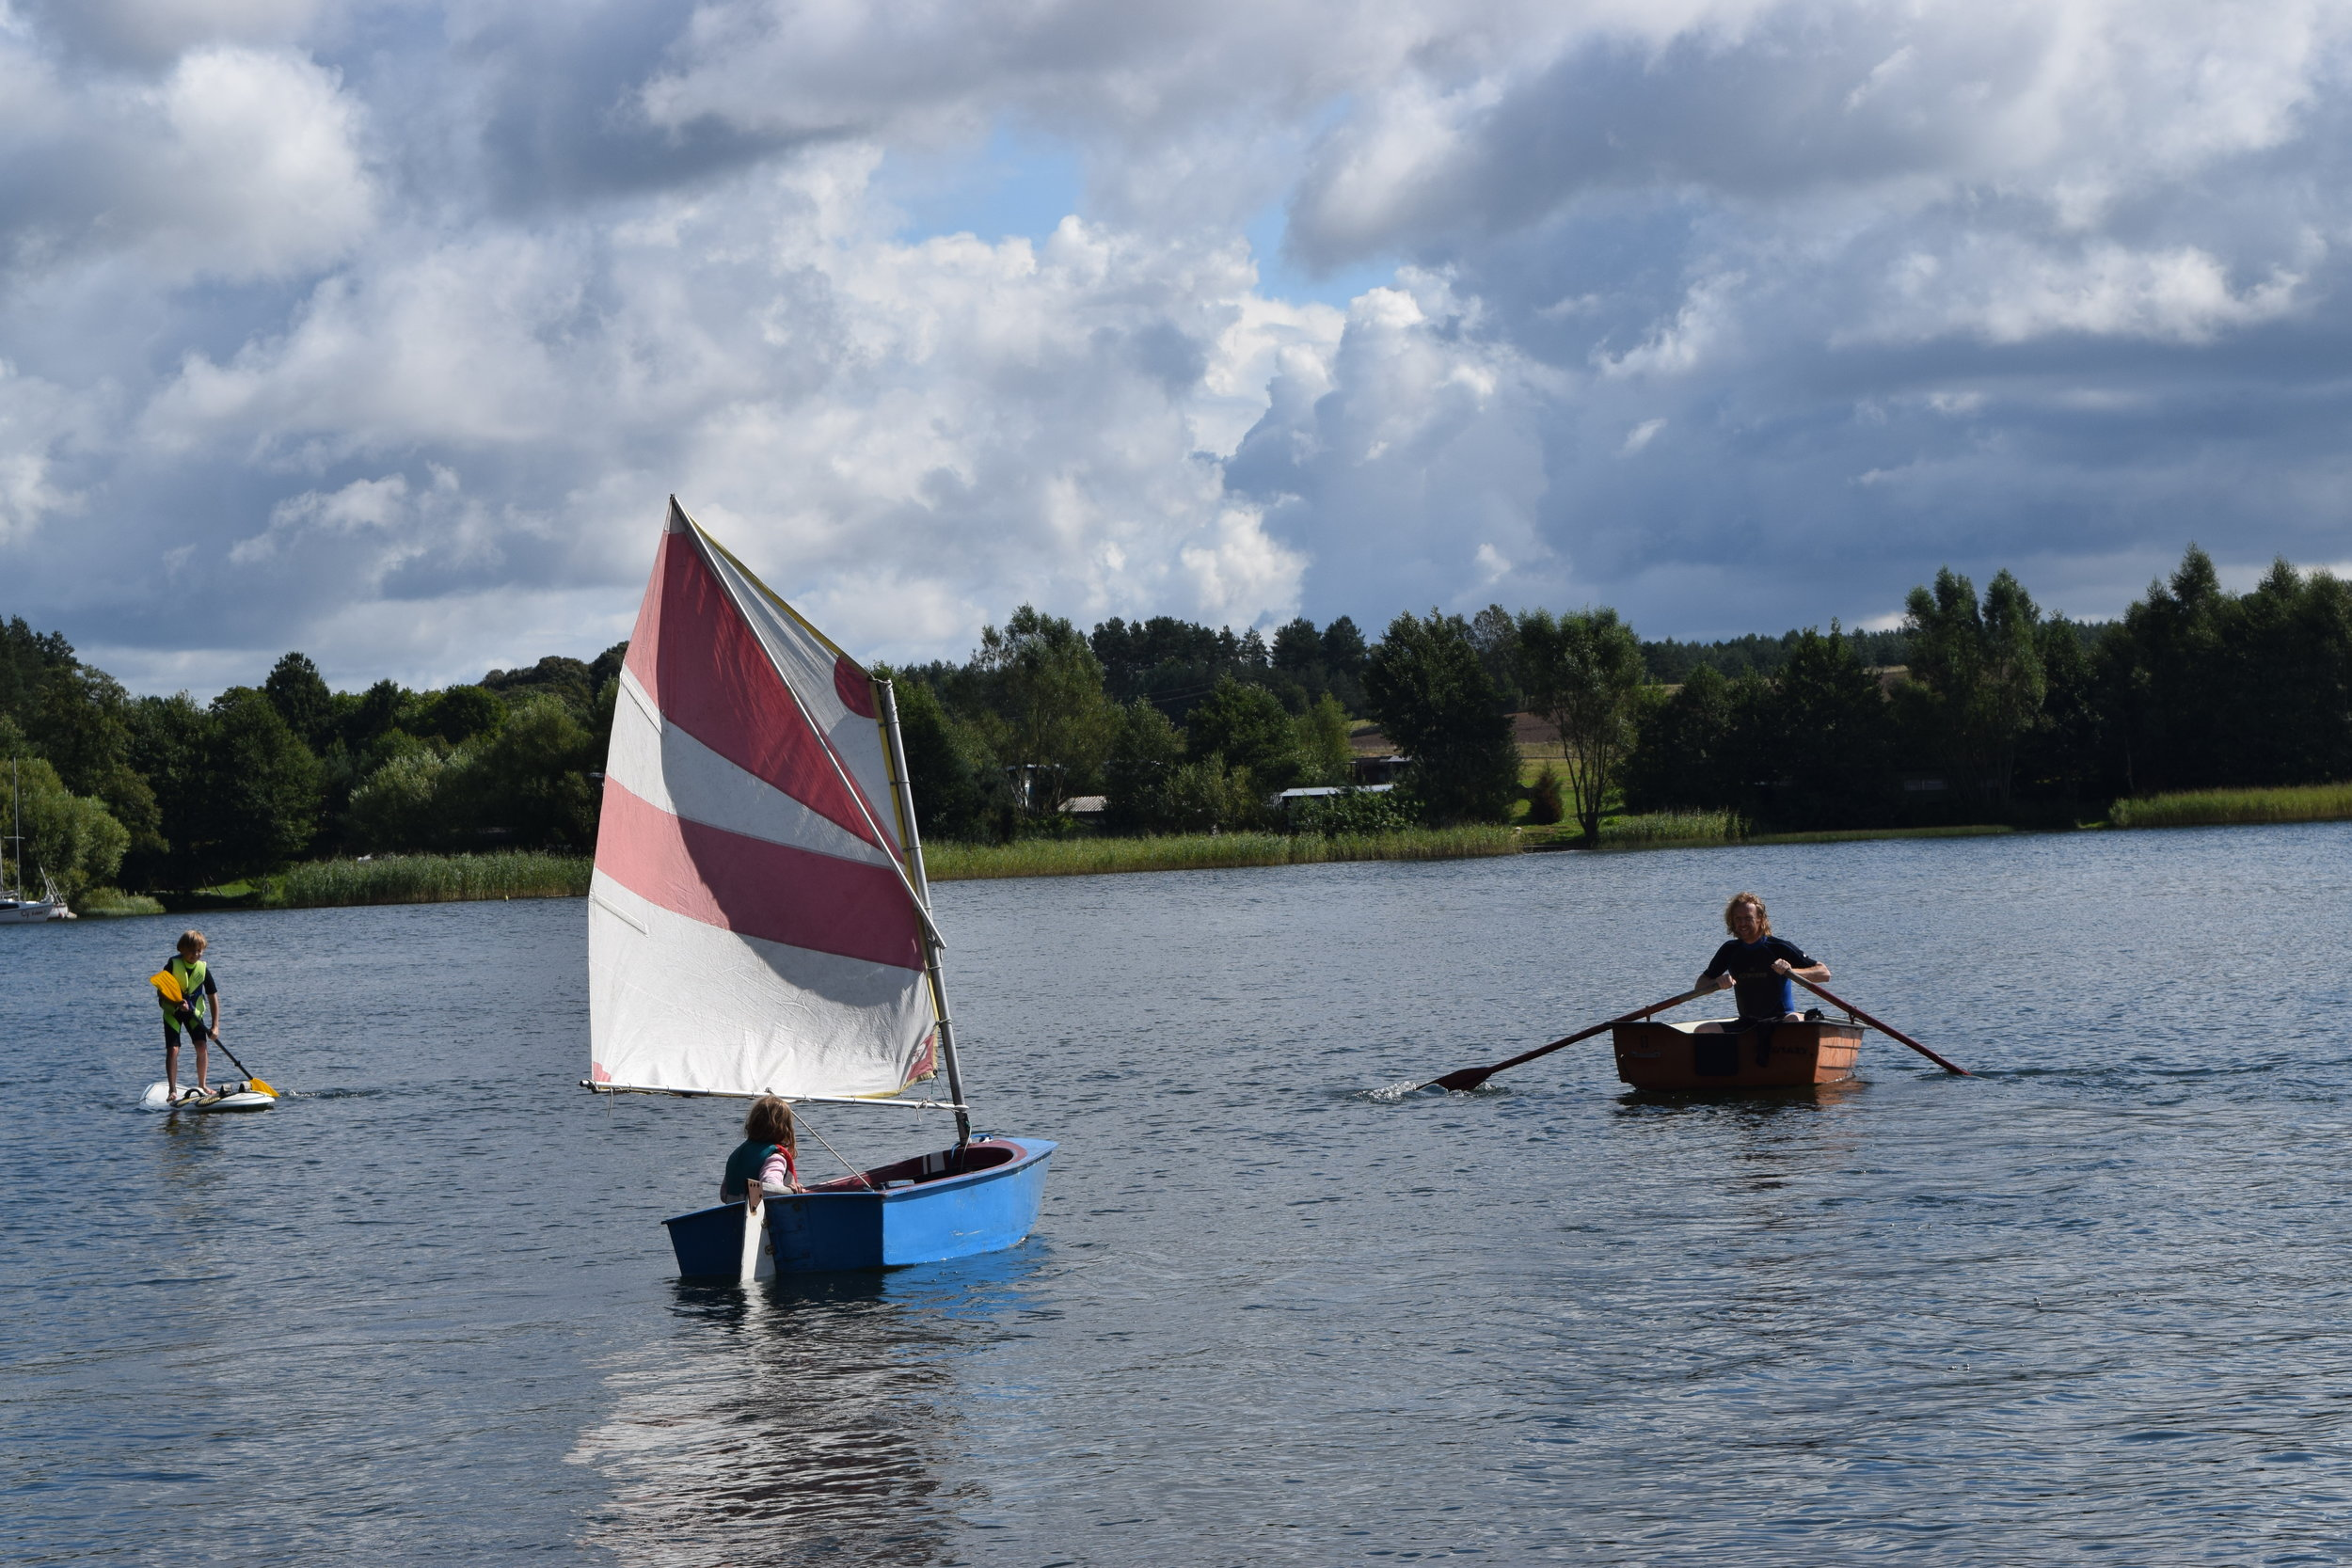 Teaching the children to sail by their own